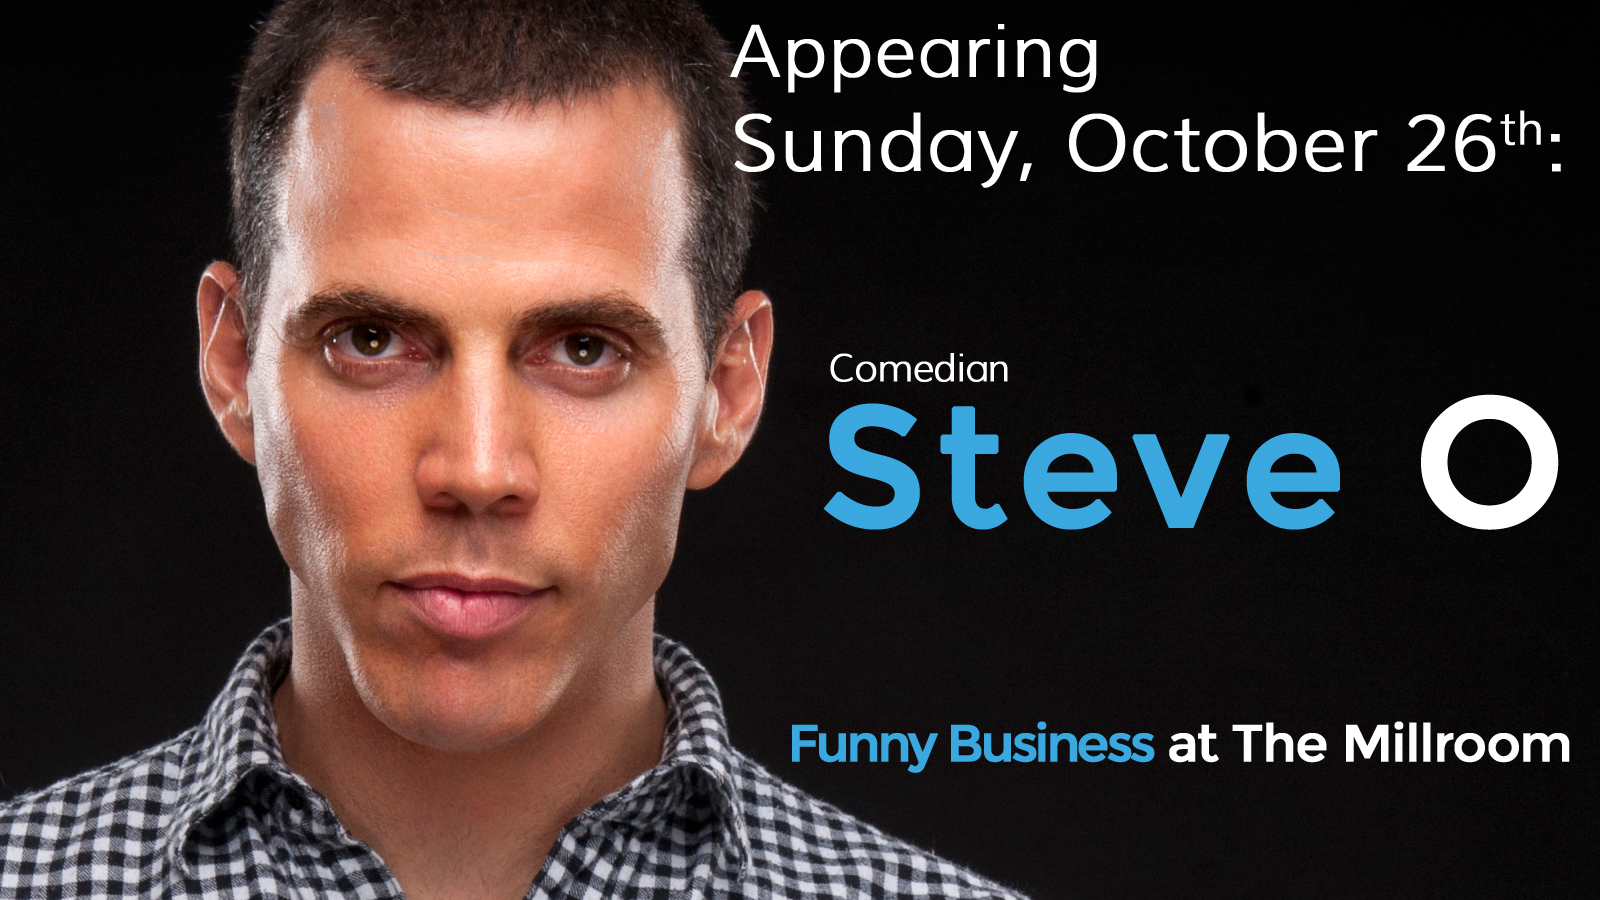 Steve-O to perform at The Millroom in Asheville on Oct. 26